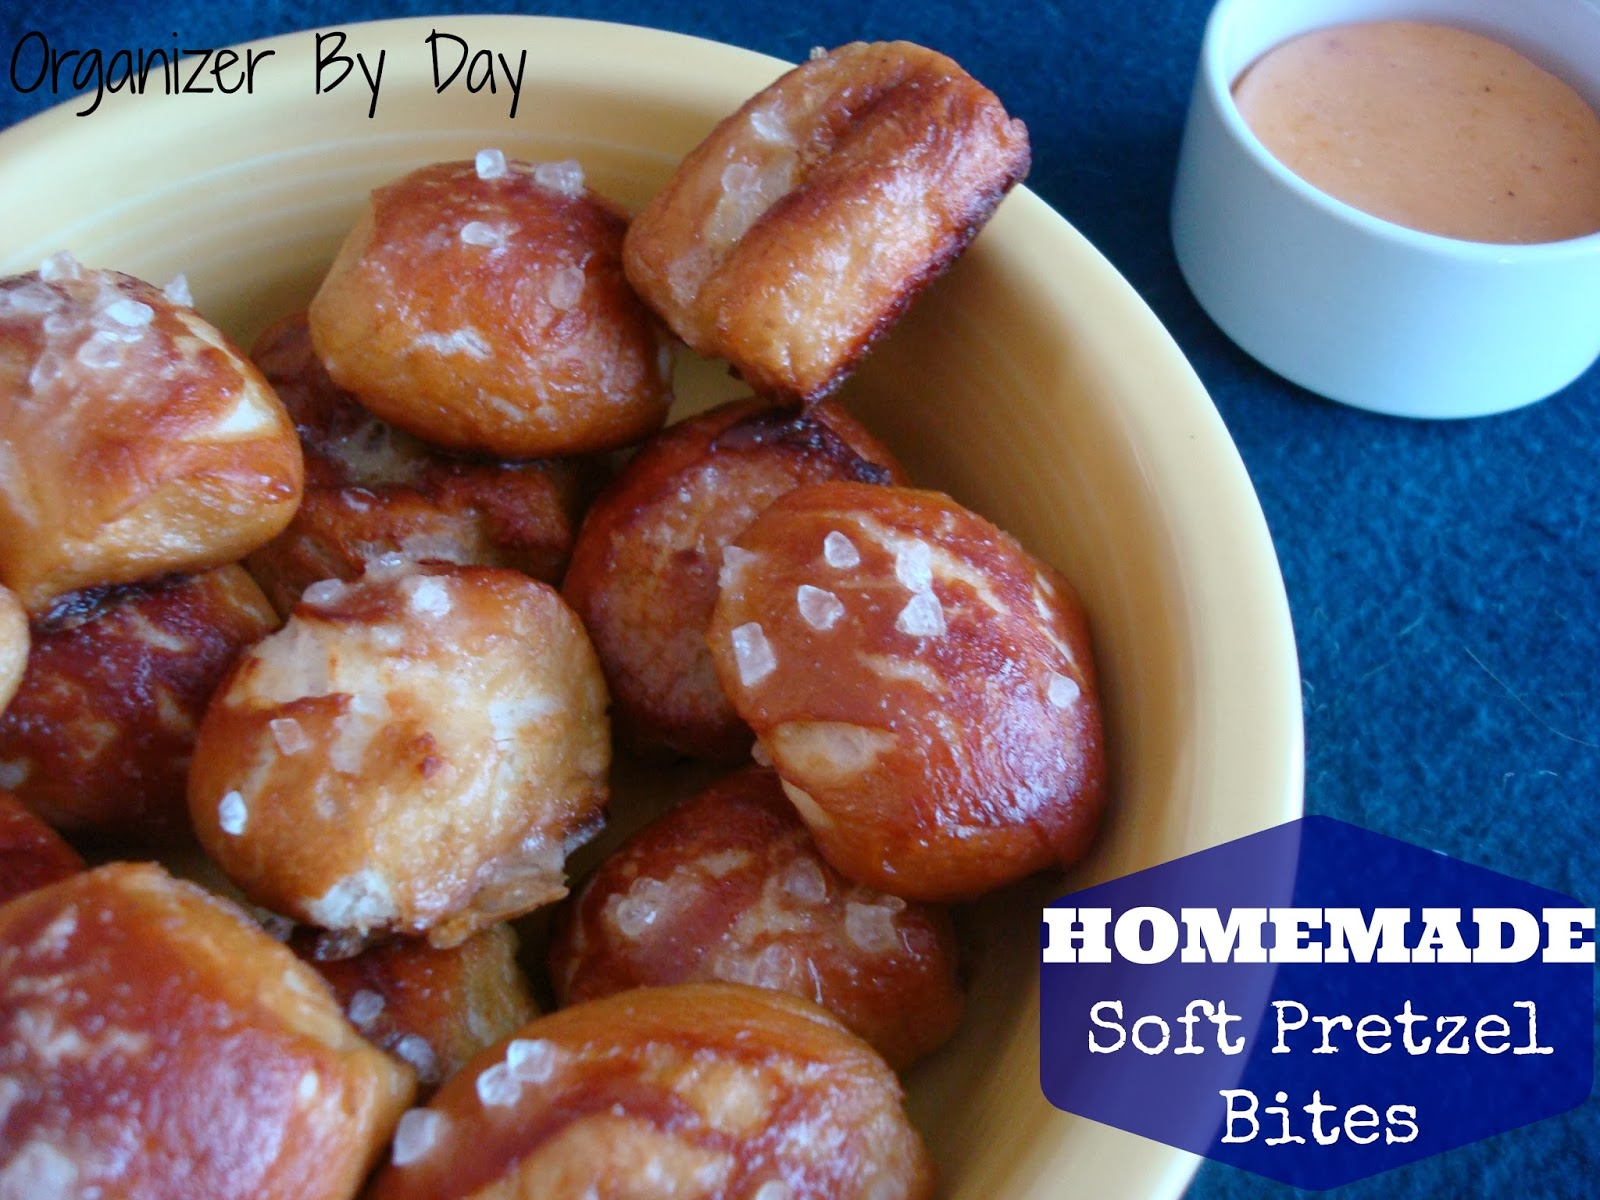 ... Check It Out!: Homemade Soft Pretzel Bites with Homemade Cheese Sauce